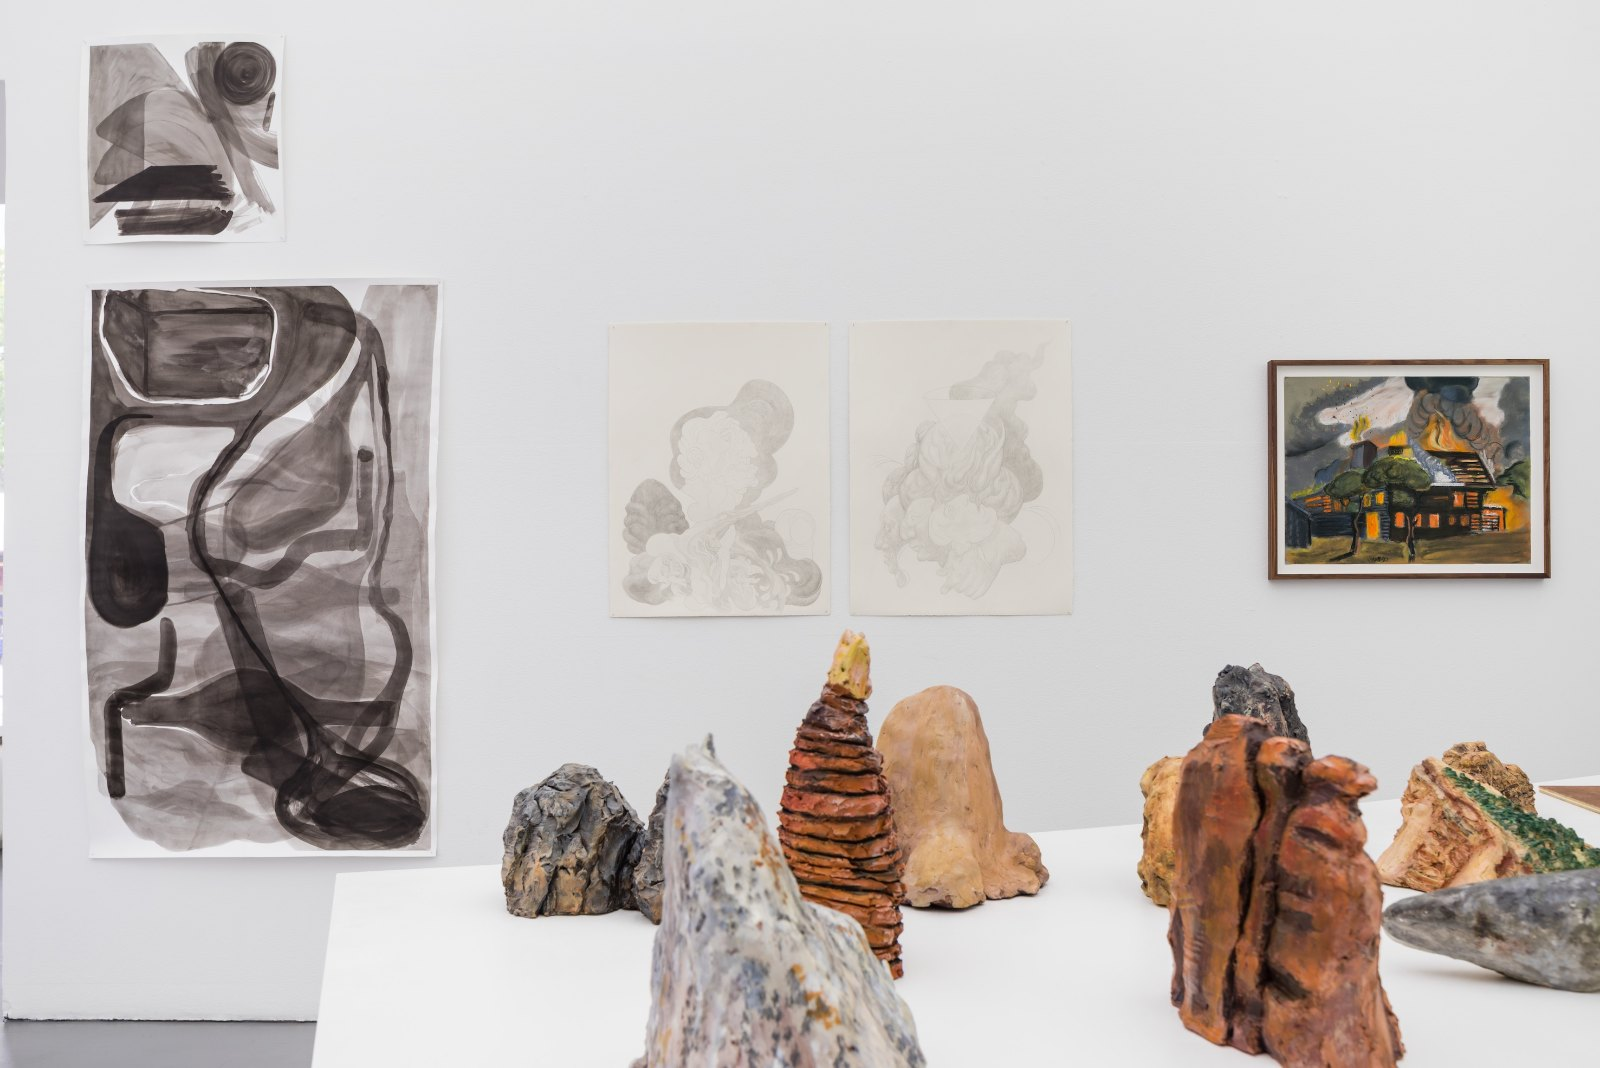 """From left: Marianne Skaarup Jakobsen, Cave, 2014, ink on paper, 55 x 54 cm. Still unknown, 2014, ink on paper, 93 x 151 cm. Andreas Kalliaridis, untitled, 2015, pencil on paper, 56 x 76 cm / Untitled, 2015, pencil on paper, 56 x 76 cm. Olle Wärnbäck, Sång 2, 2015, crayon on paper, 63 x 48 cm. Frida Tebus, Detail of """"13 Sculptures"""", 2009-2010, acrylic on clay, dimensions variable"""